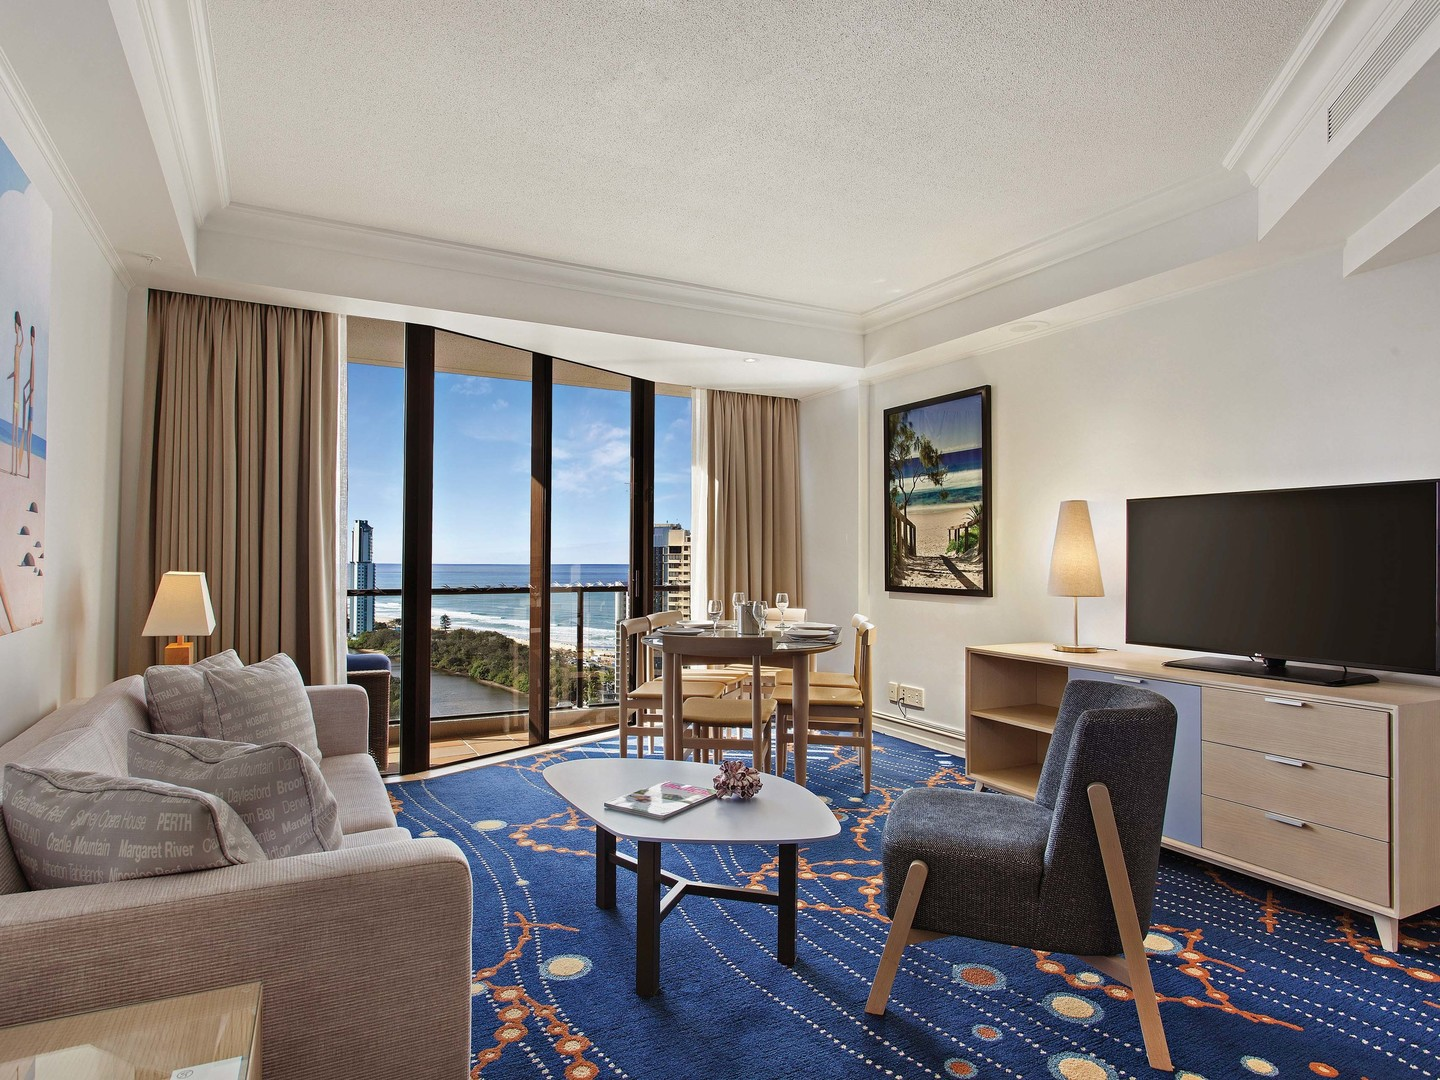 Marriott Vacation Club<span class='trademark'>℠</span> at Surfers Paradise Suite Living Room. Marriott Vacation Club<span class='trademark'>℠</span> at Surfers Paradise is located in Gold Coast, Surfers Paradise Australia.